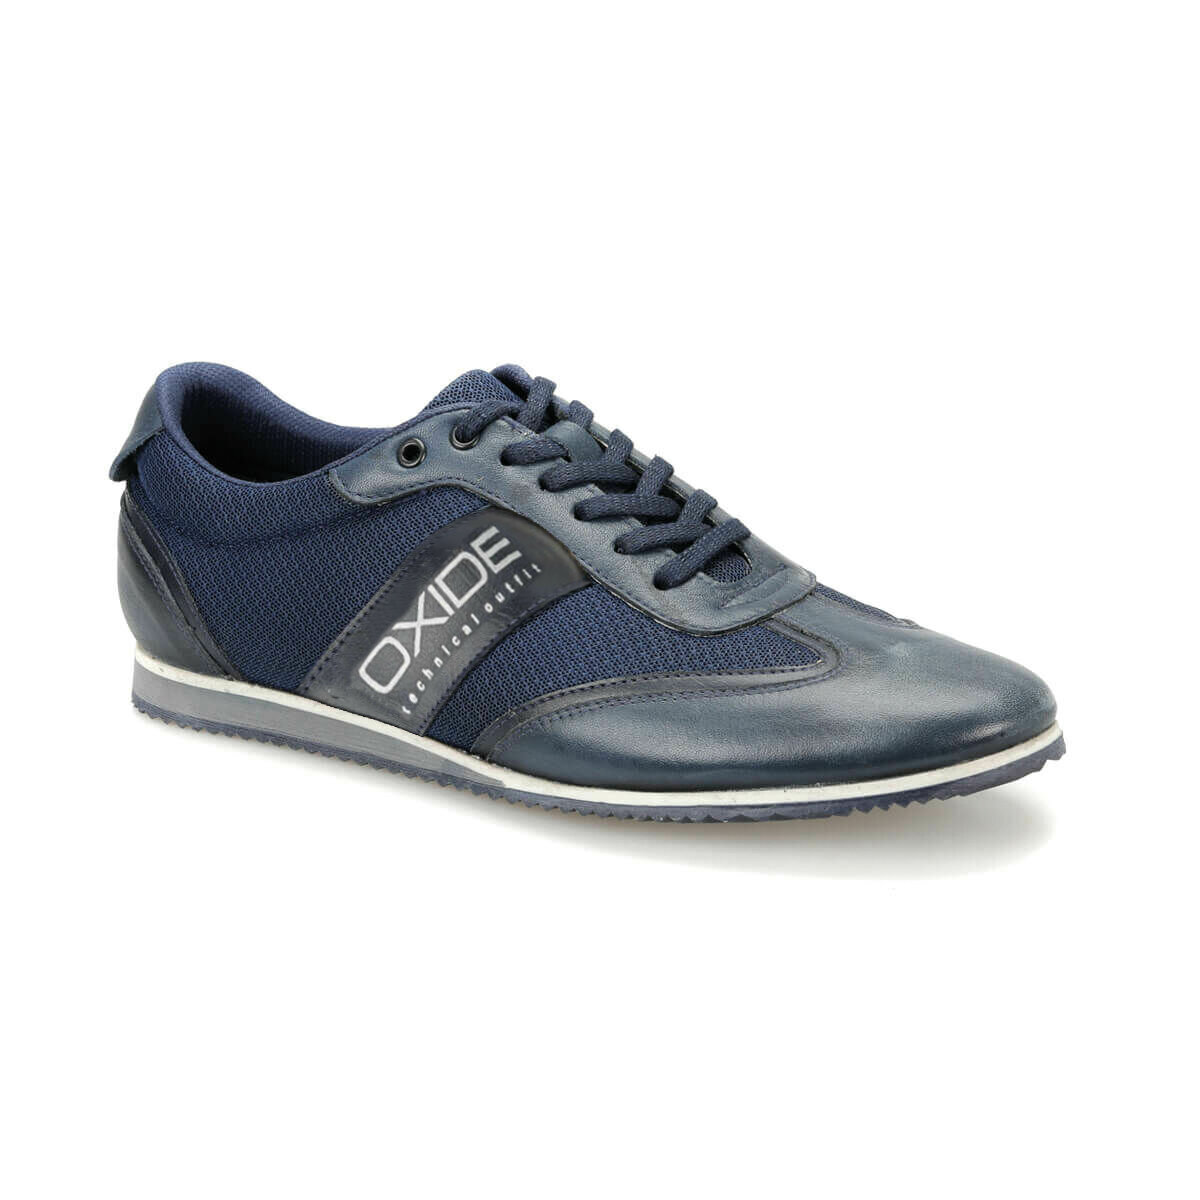 FLO VLK196 Navy Blue Men 'S Shoes Oxide